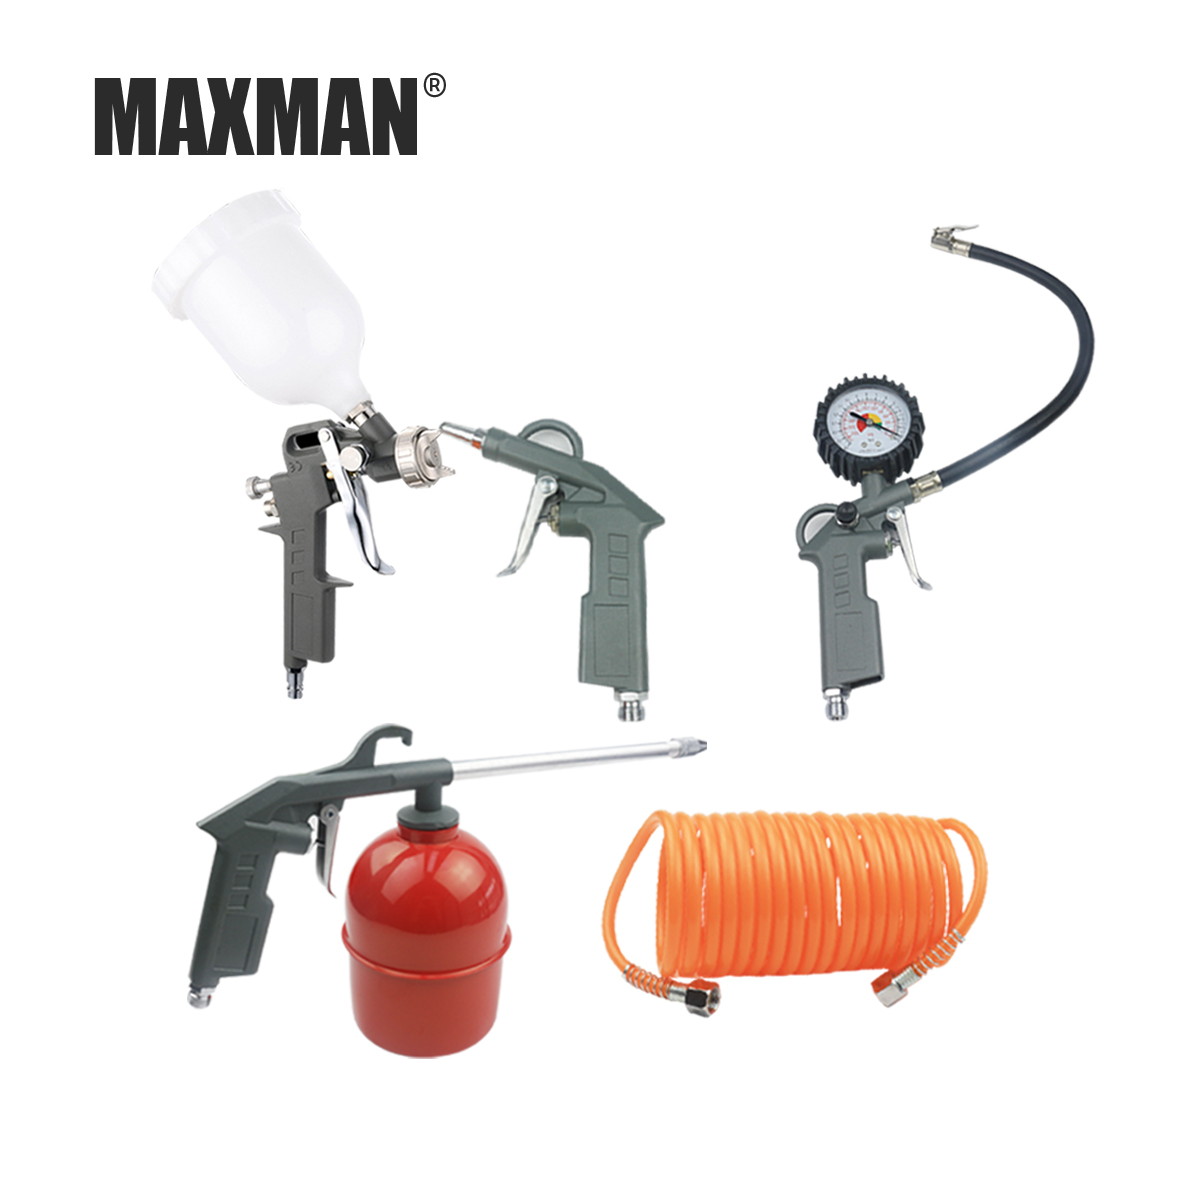 MAXMAN 400ML 5pcs Professional Pneumatic Spray Gun Airbrush Sprayer Alloy Painting Atomizer Tools with Hopper for Painting Car стоимость